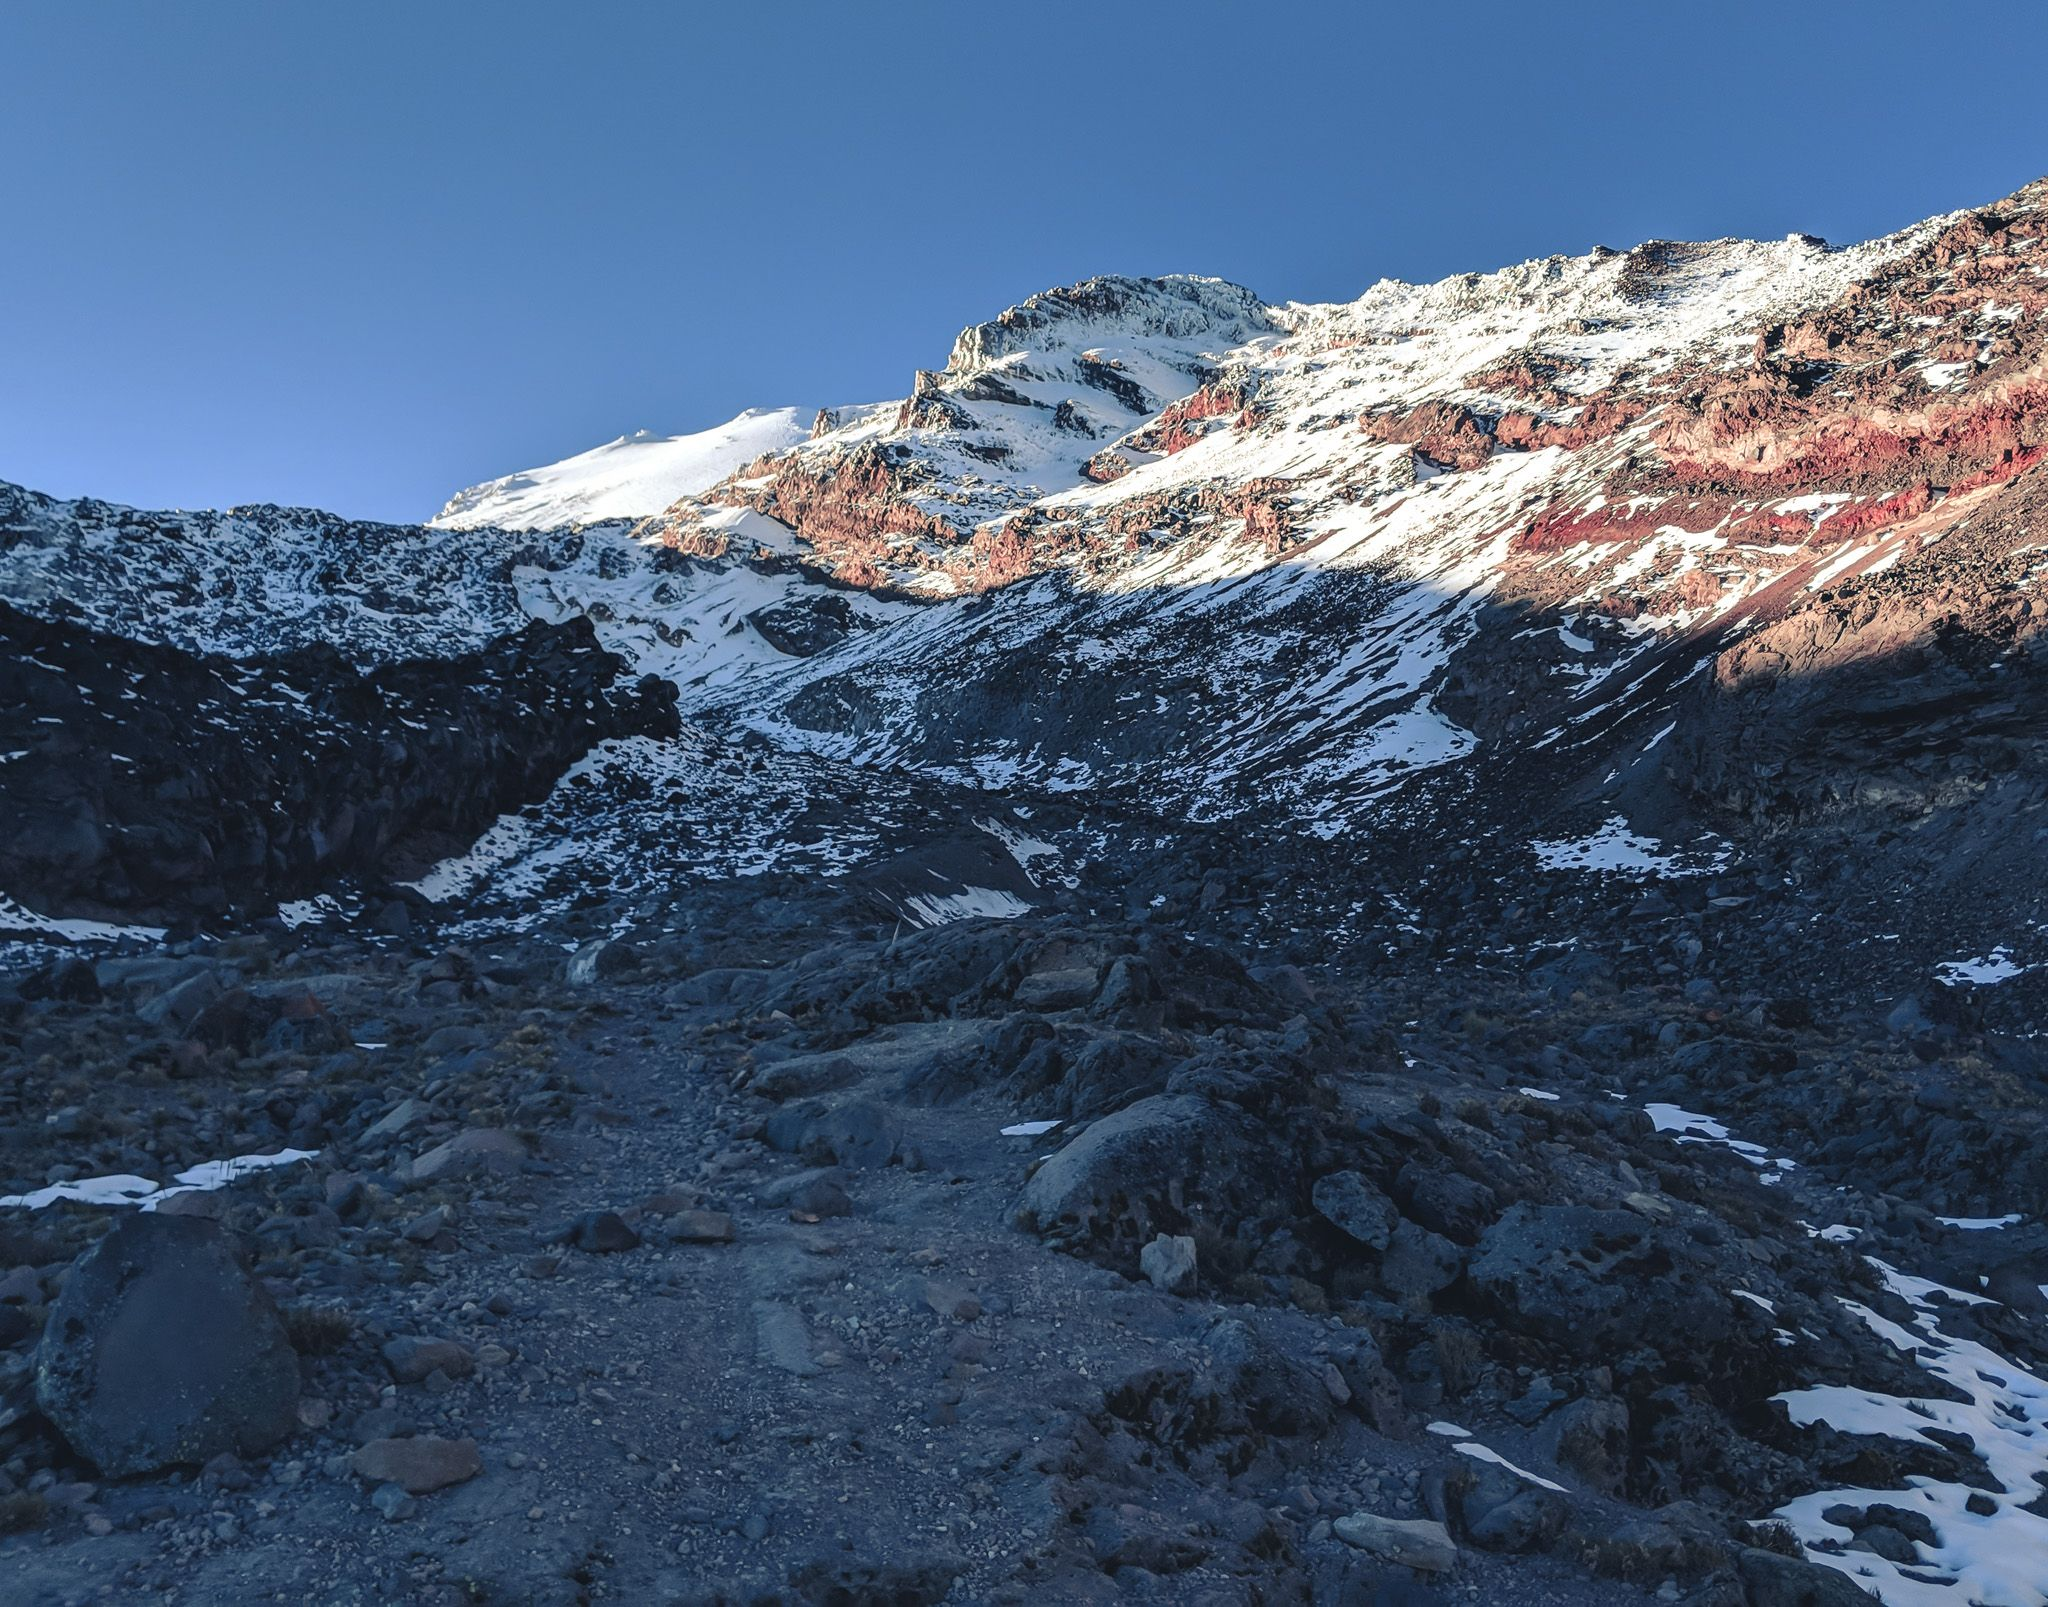 Looking up at the Labyrinth and Glacier on Pico de Orizaba